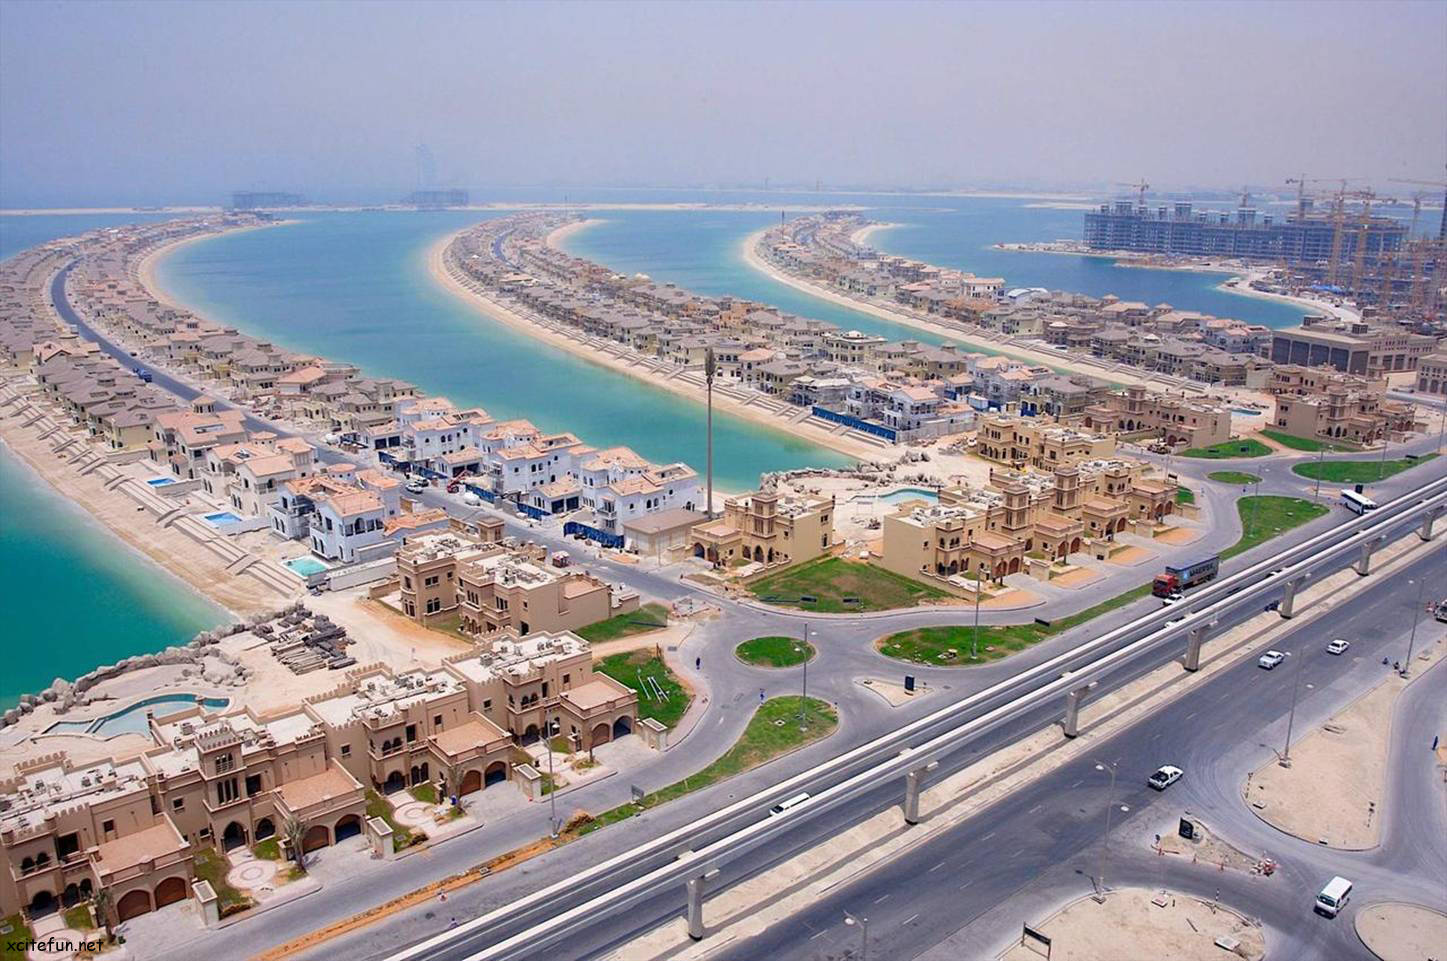 1001Places: Palm Jumeirah, Dubai Latest Pictures Part 1